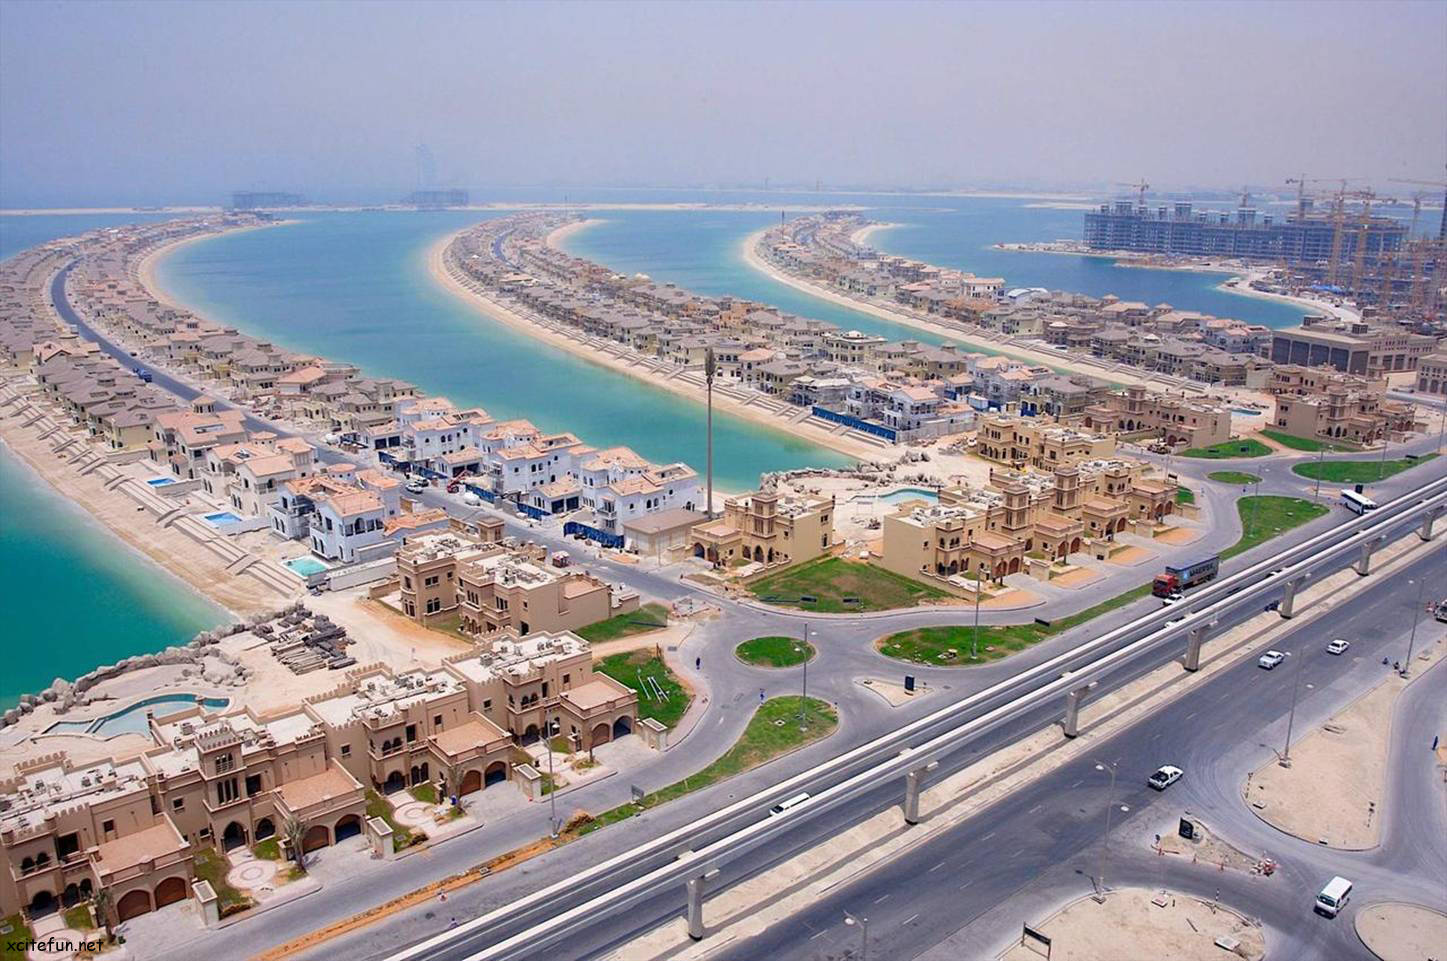 1001Places: Palm Jumeirah, Dubai Latest Pictures Part 1